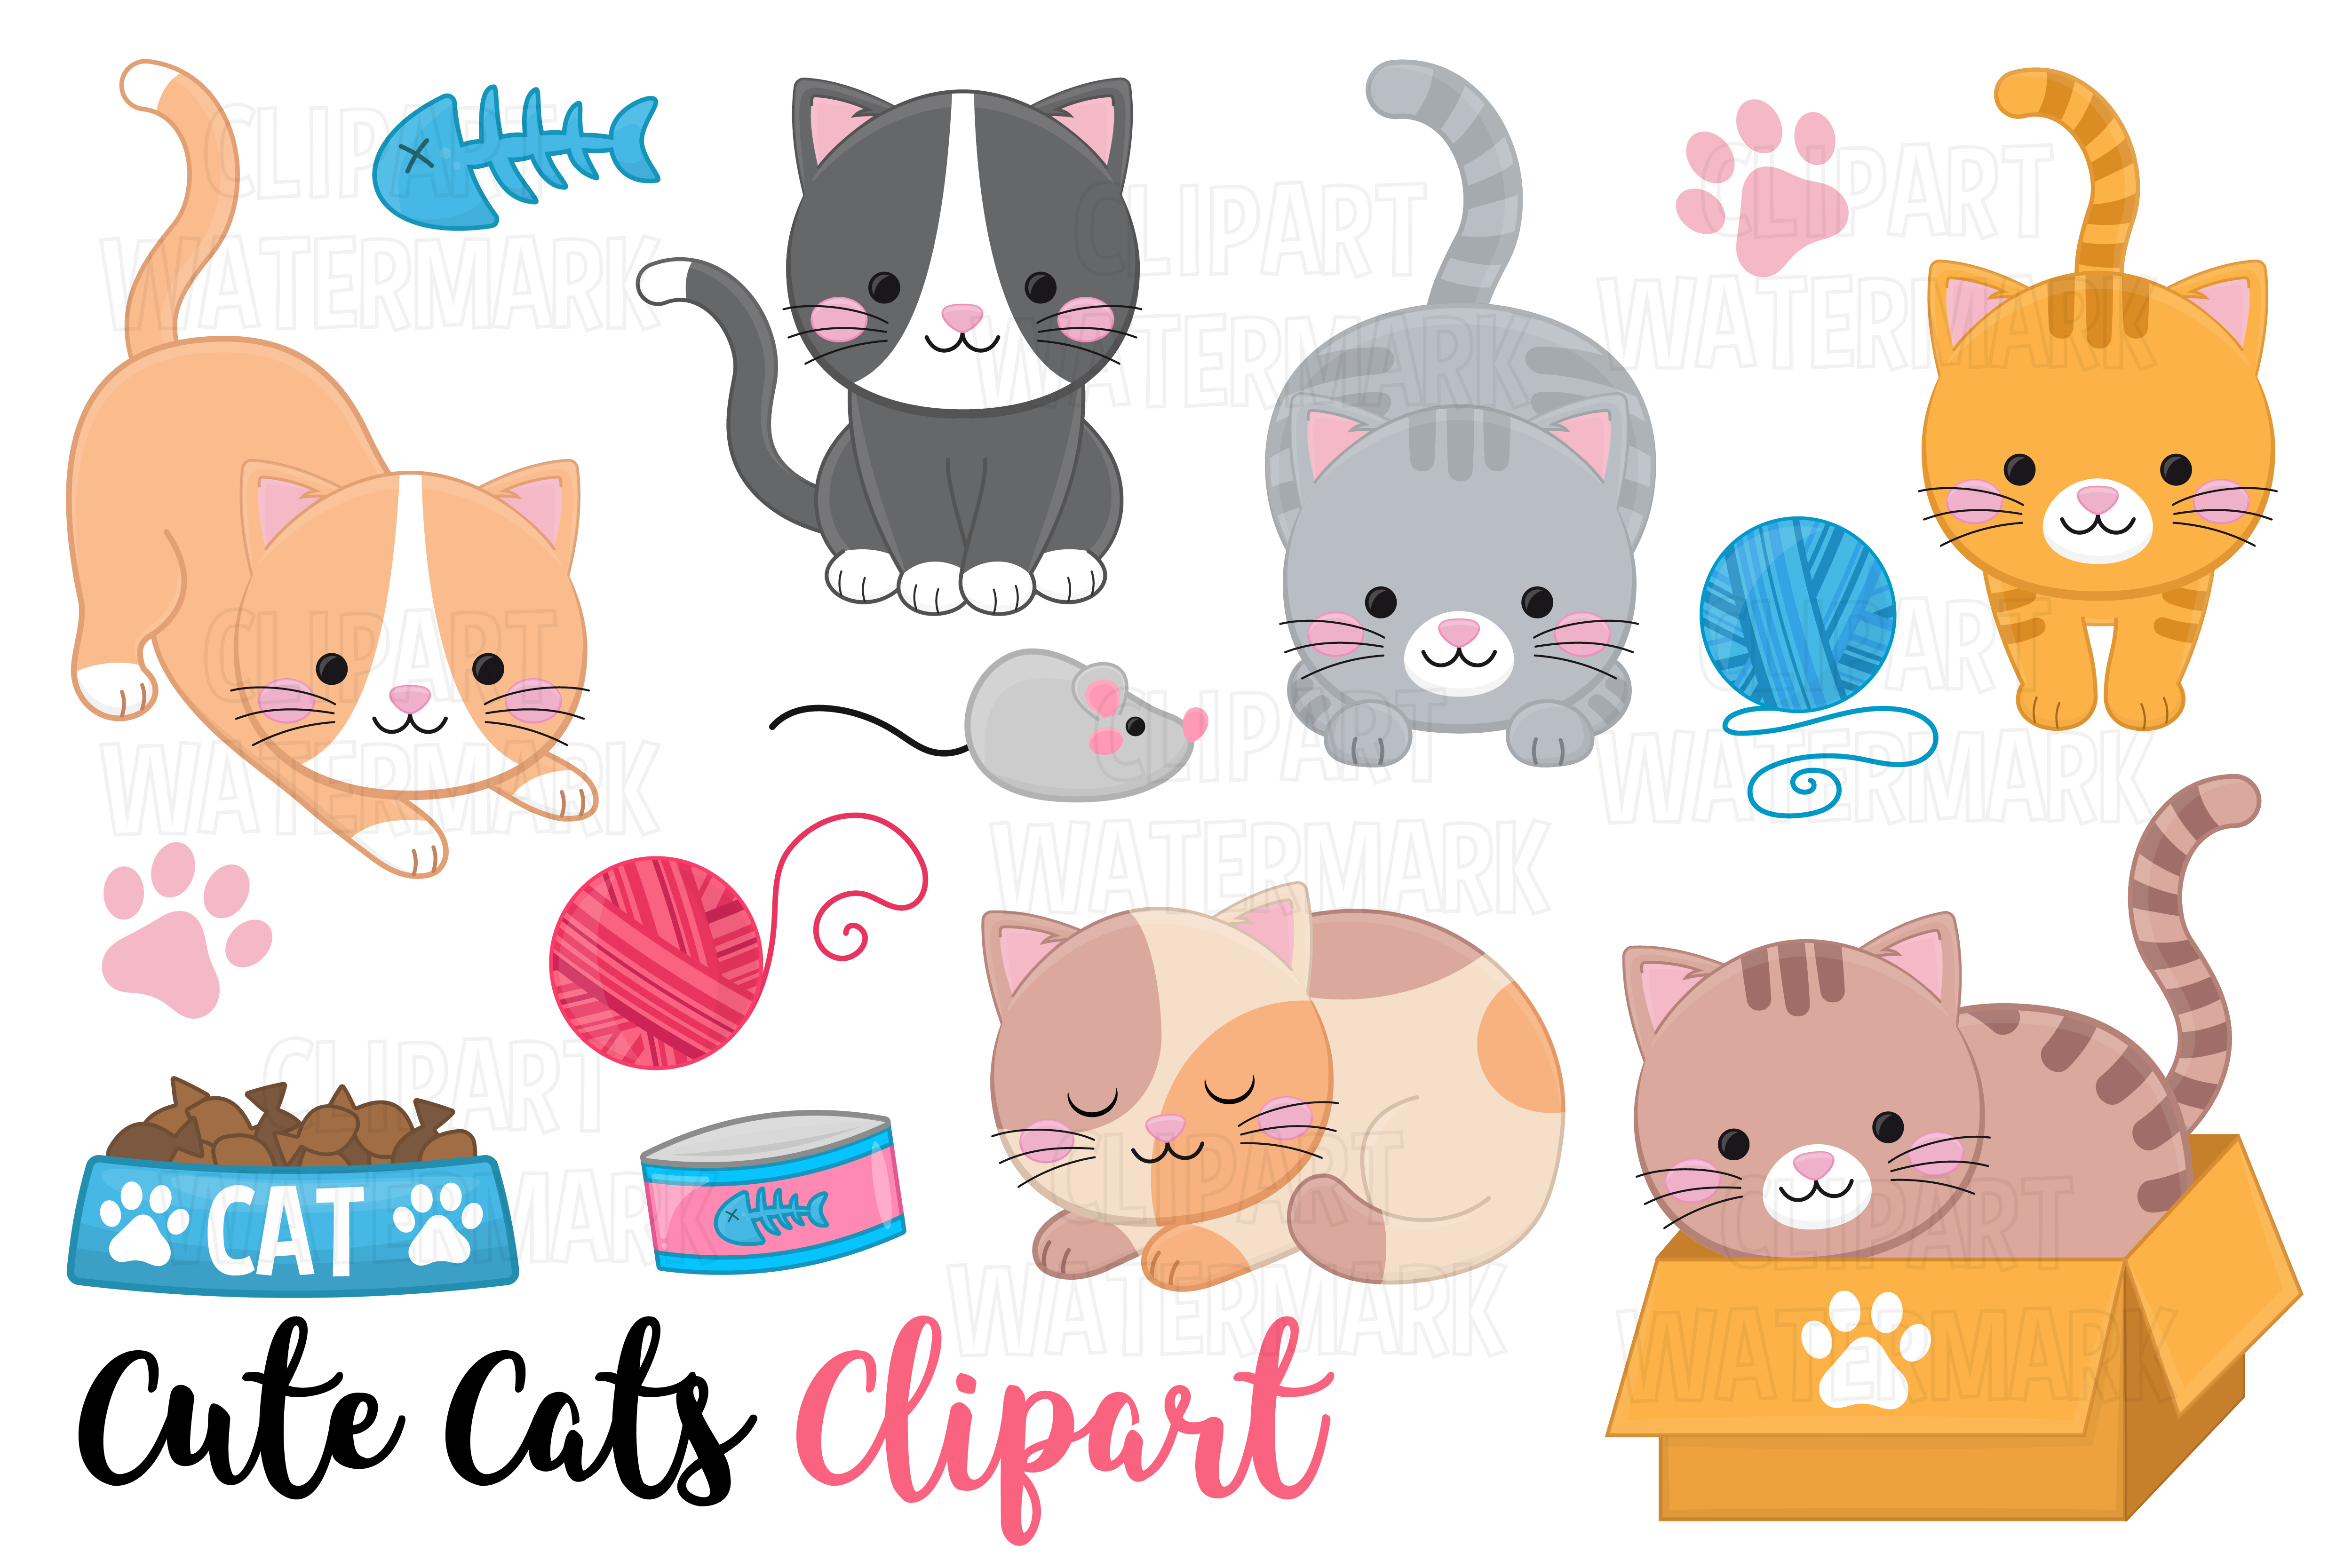 Download Free Cats And Kittens Clipart Graphic By Magreenhouse Creative Fabrica for Cricut Explore, Silhouette and other cutting machines.